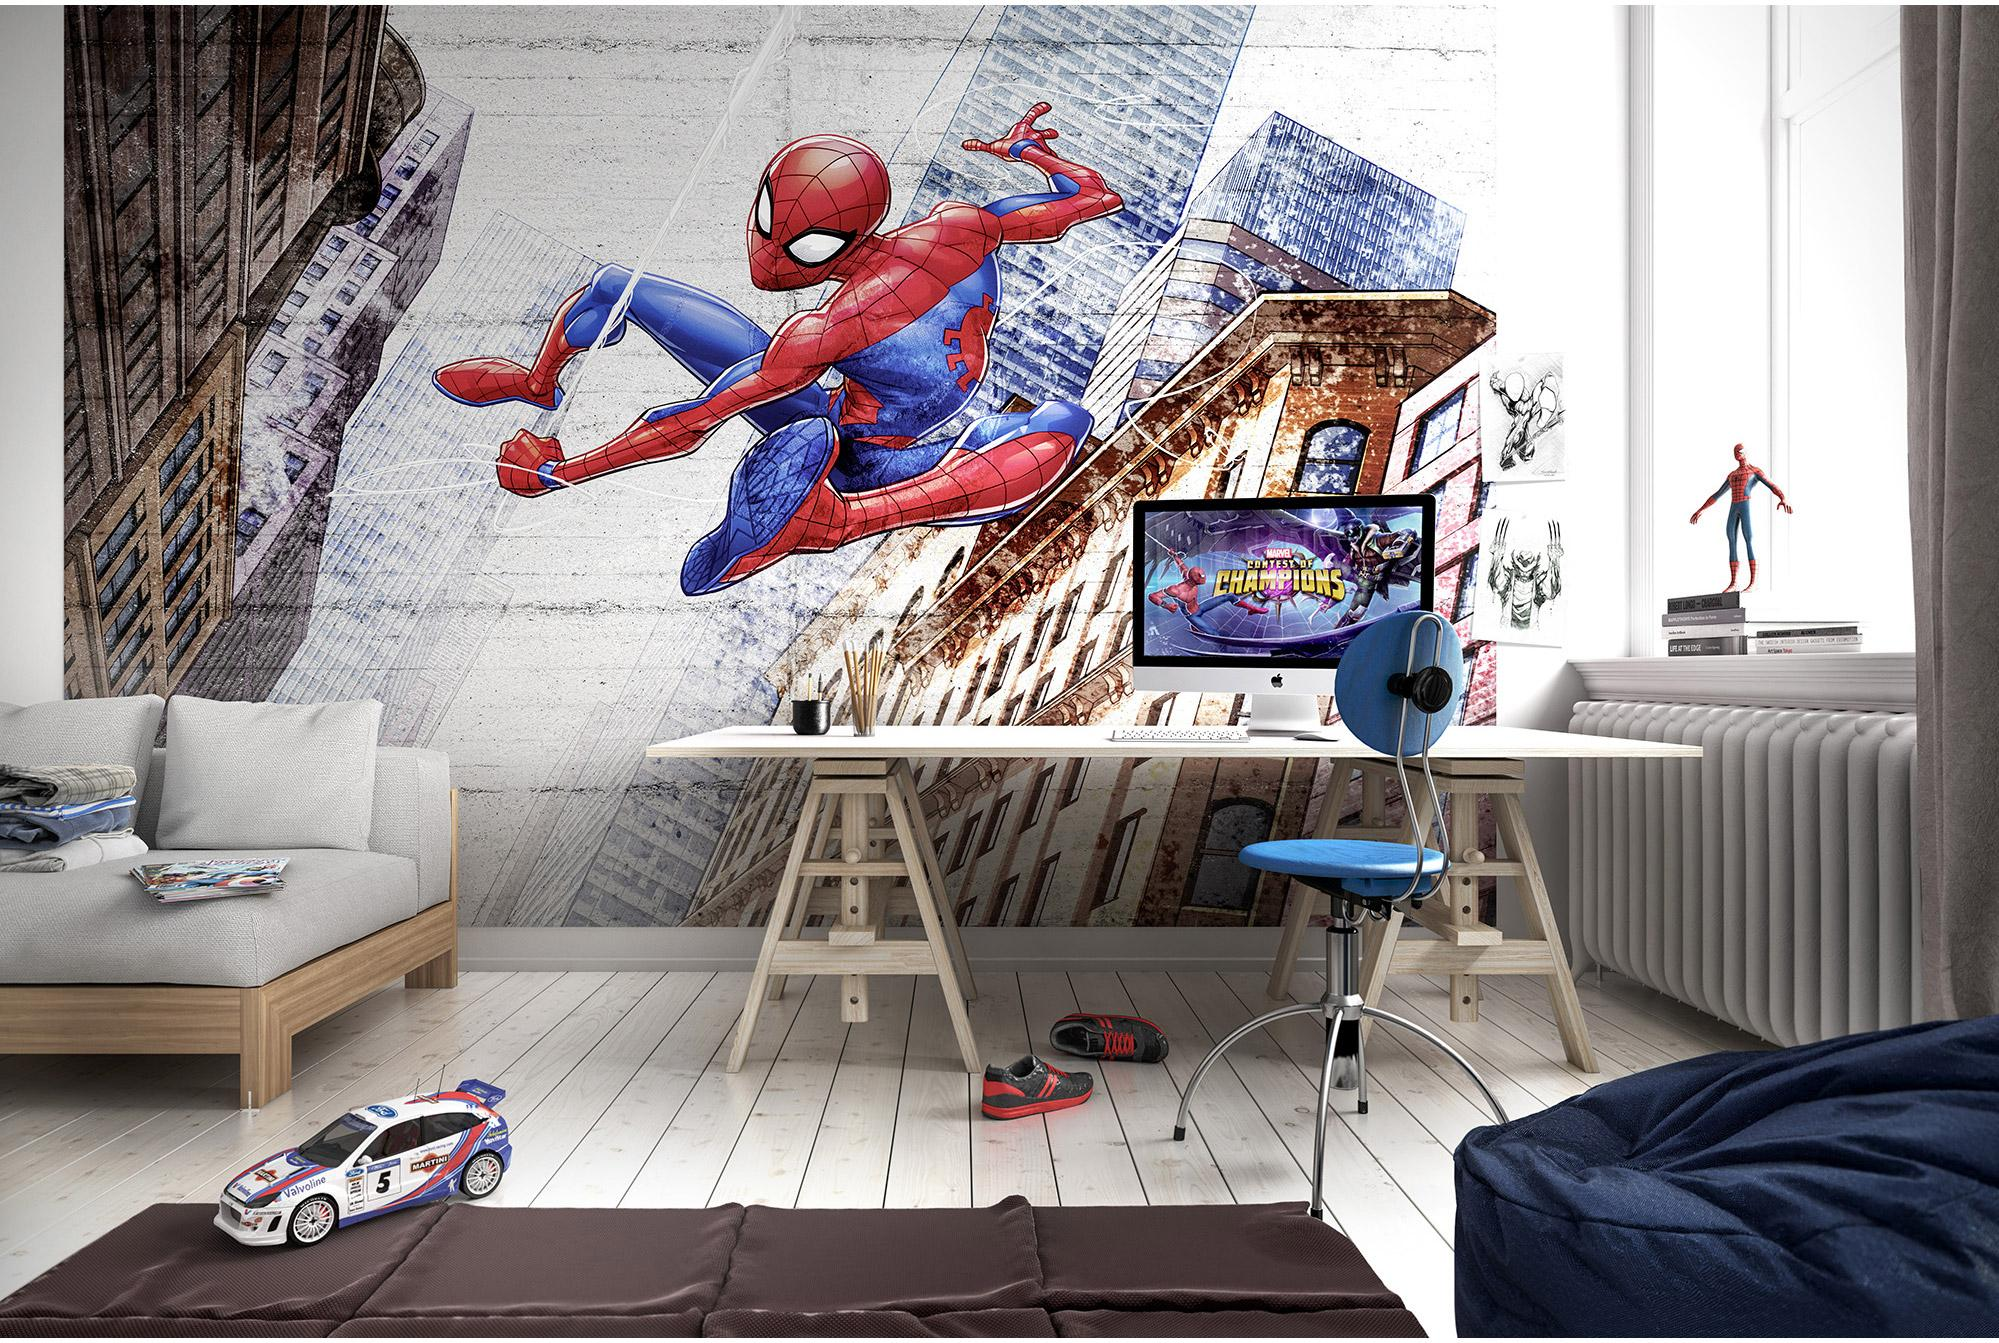 Cm 254 368 H Murale Multicolore Photo Spiderman Komar Concrete L X 0NwPnOk8X